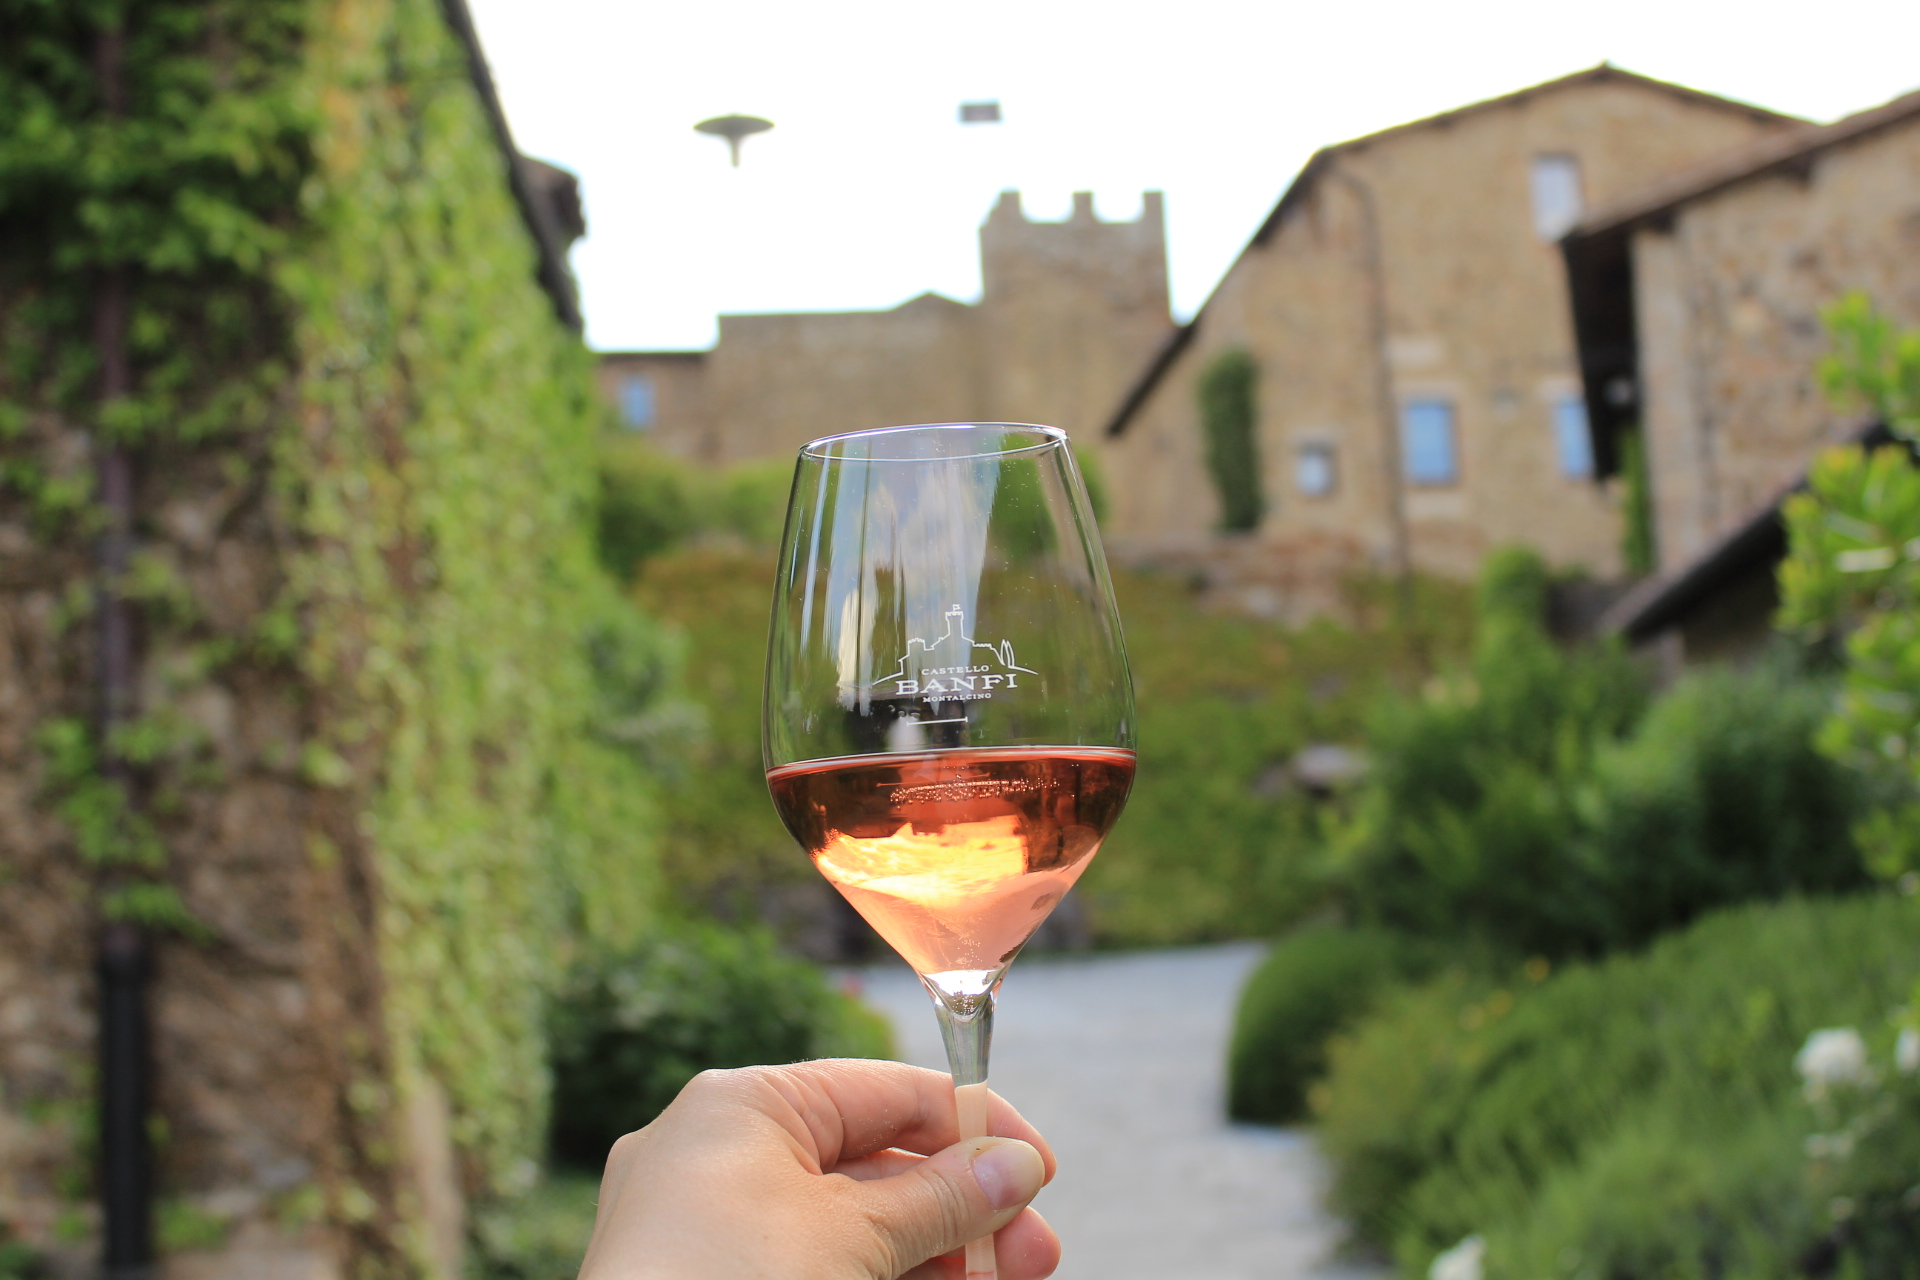 Pink castle: tasting rosè at Banfi castle in Montalcino